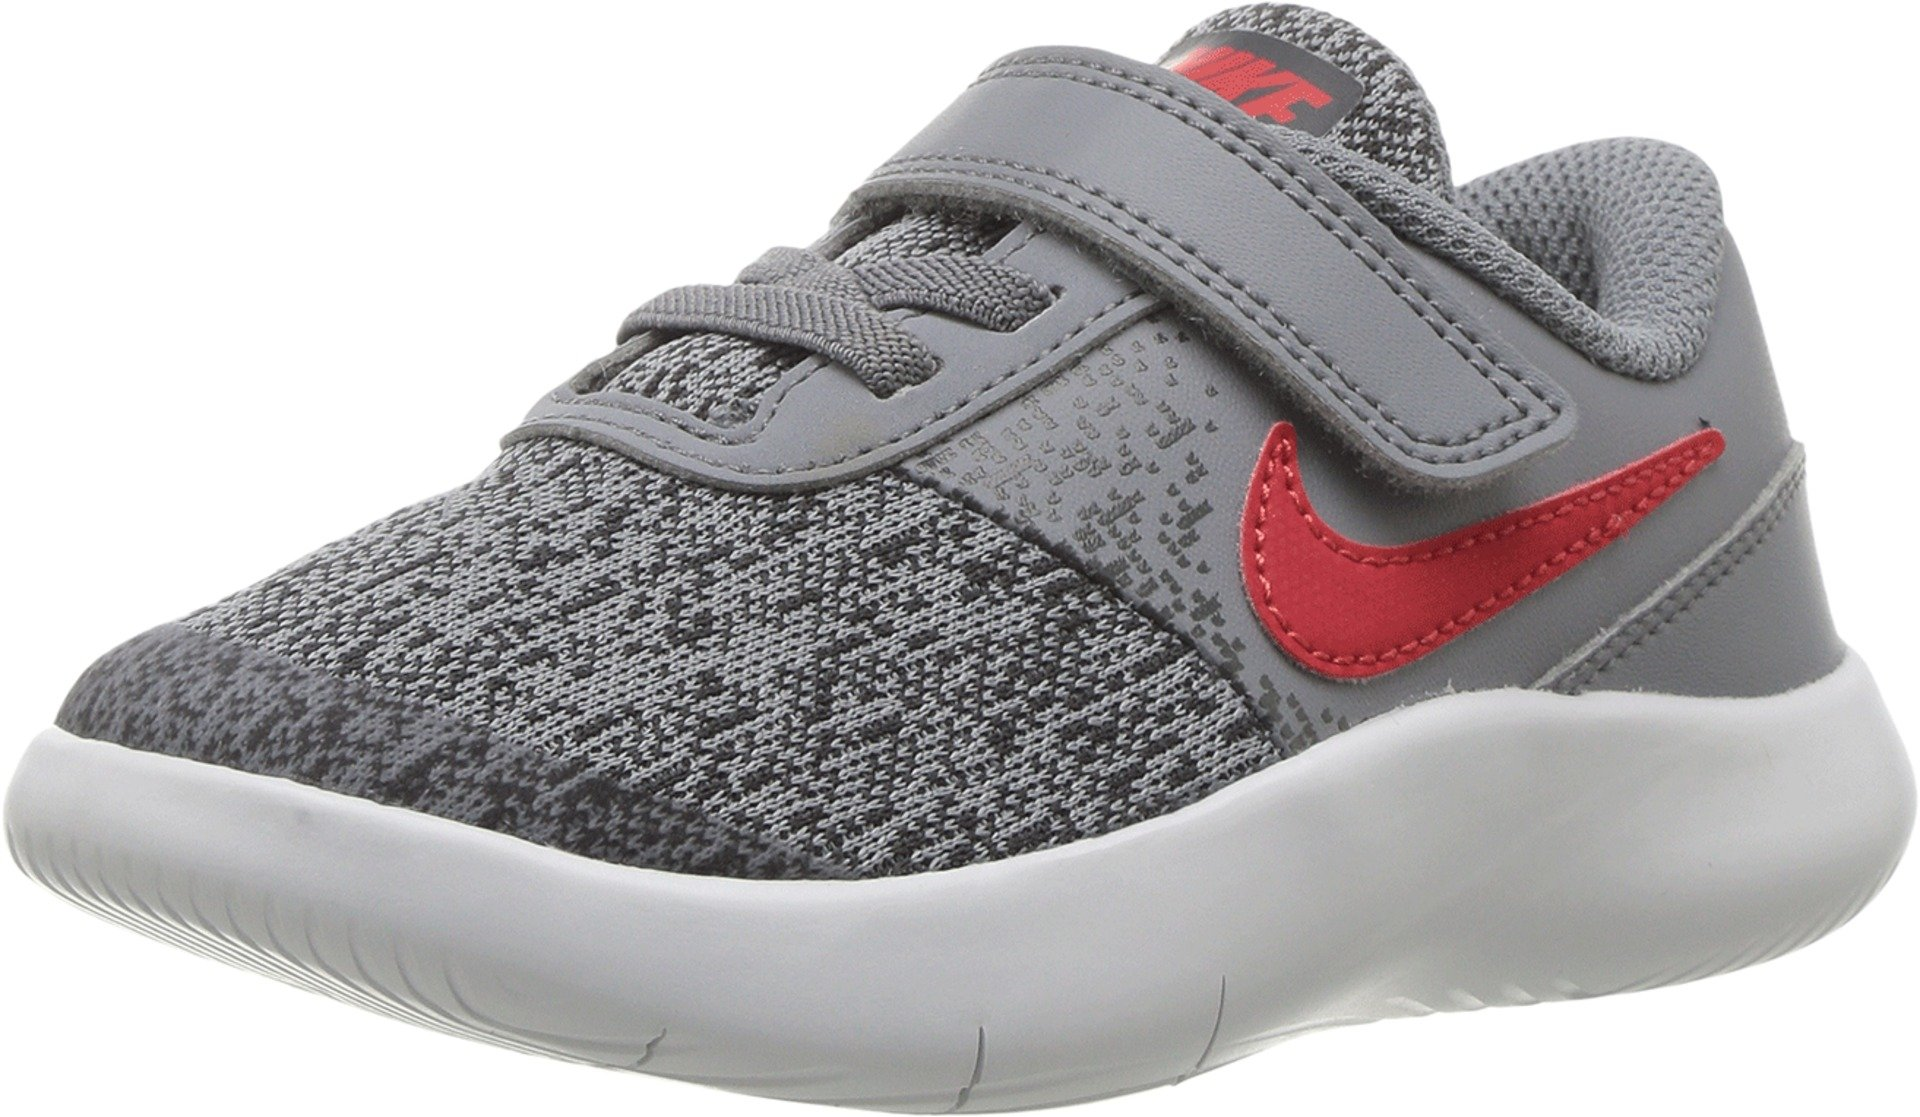 Nike Boy's Flex Contact (TDV) Running Shoes (9 Toddler M, Cool Grey/University Red-Anthracite) by Nike